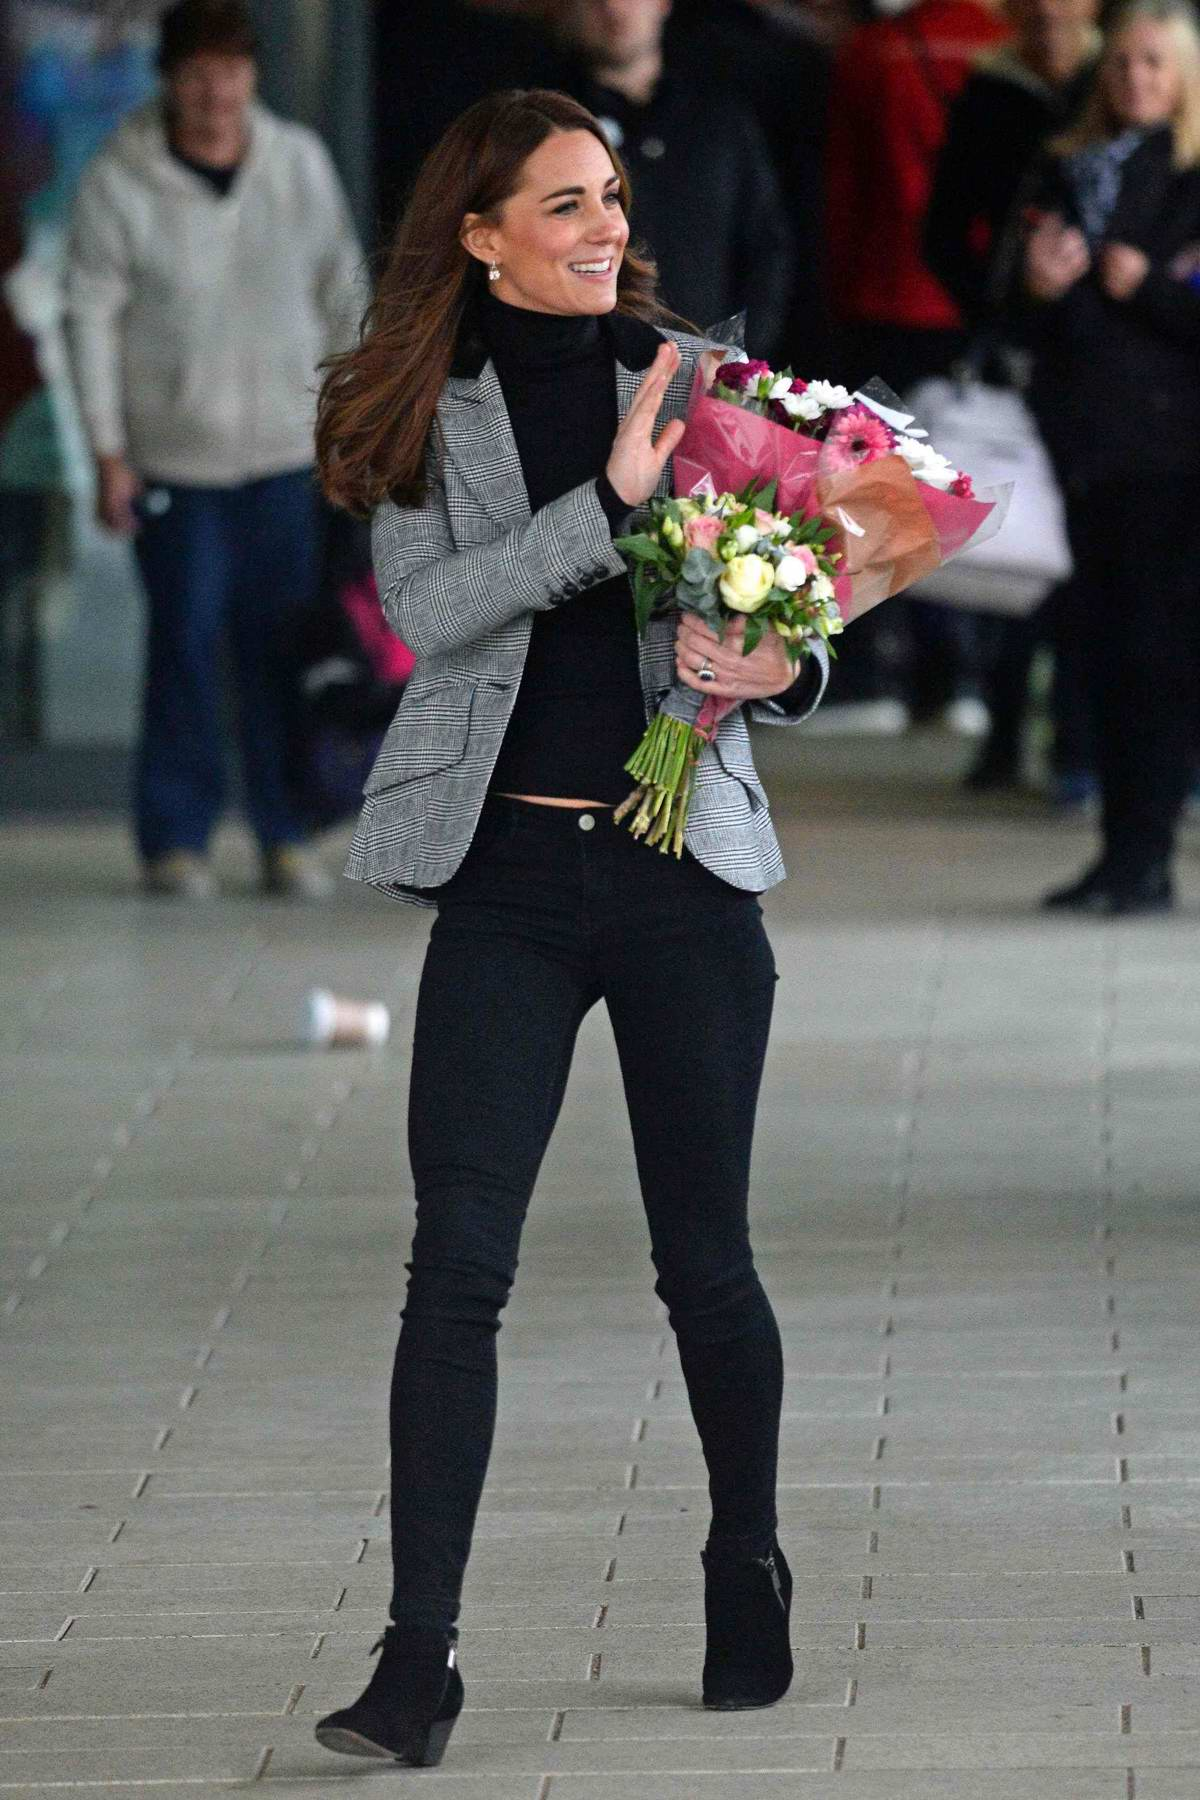 Kate Middleton visits the Basildon Sporting Village in Basildon, Essex, UK